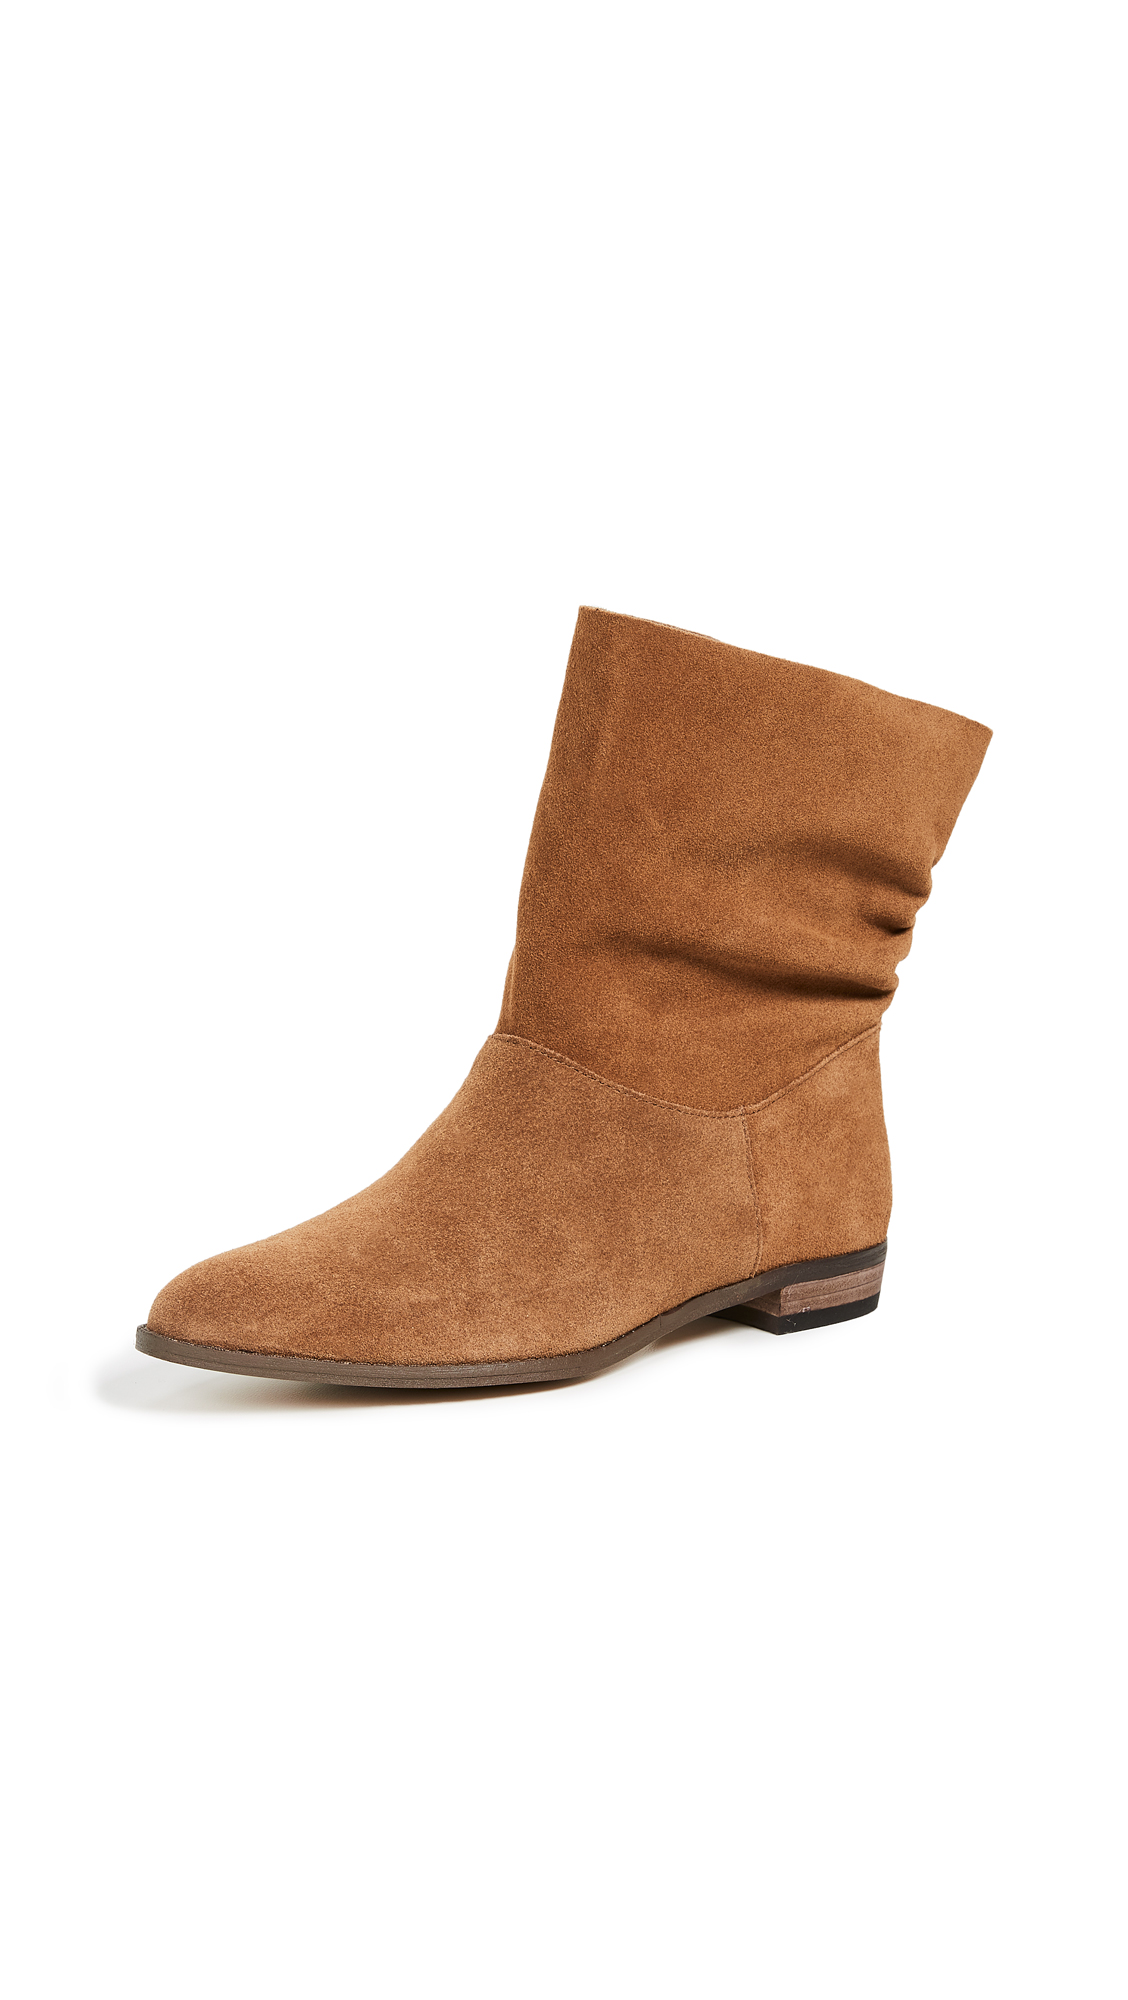 Splendid Claudia Booties - Brandy